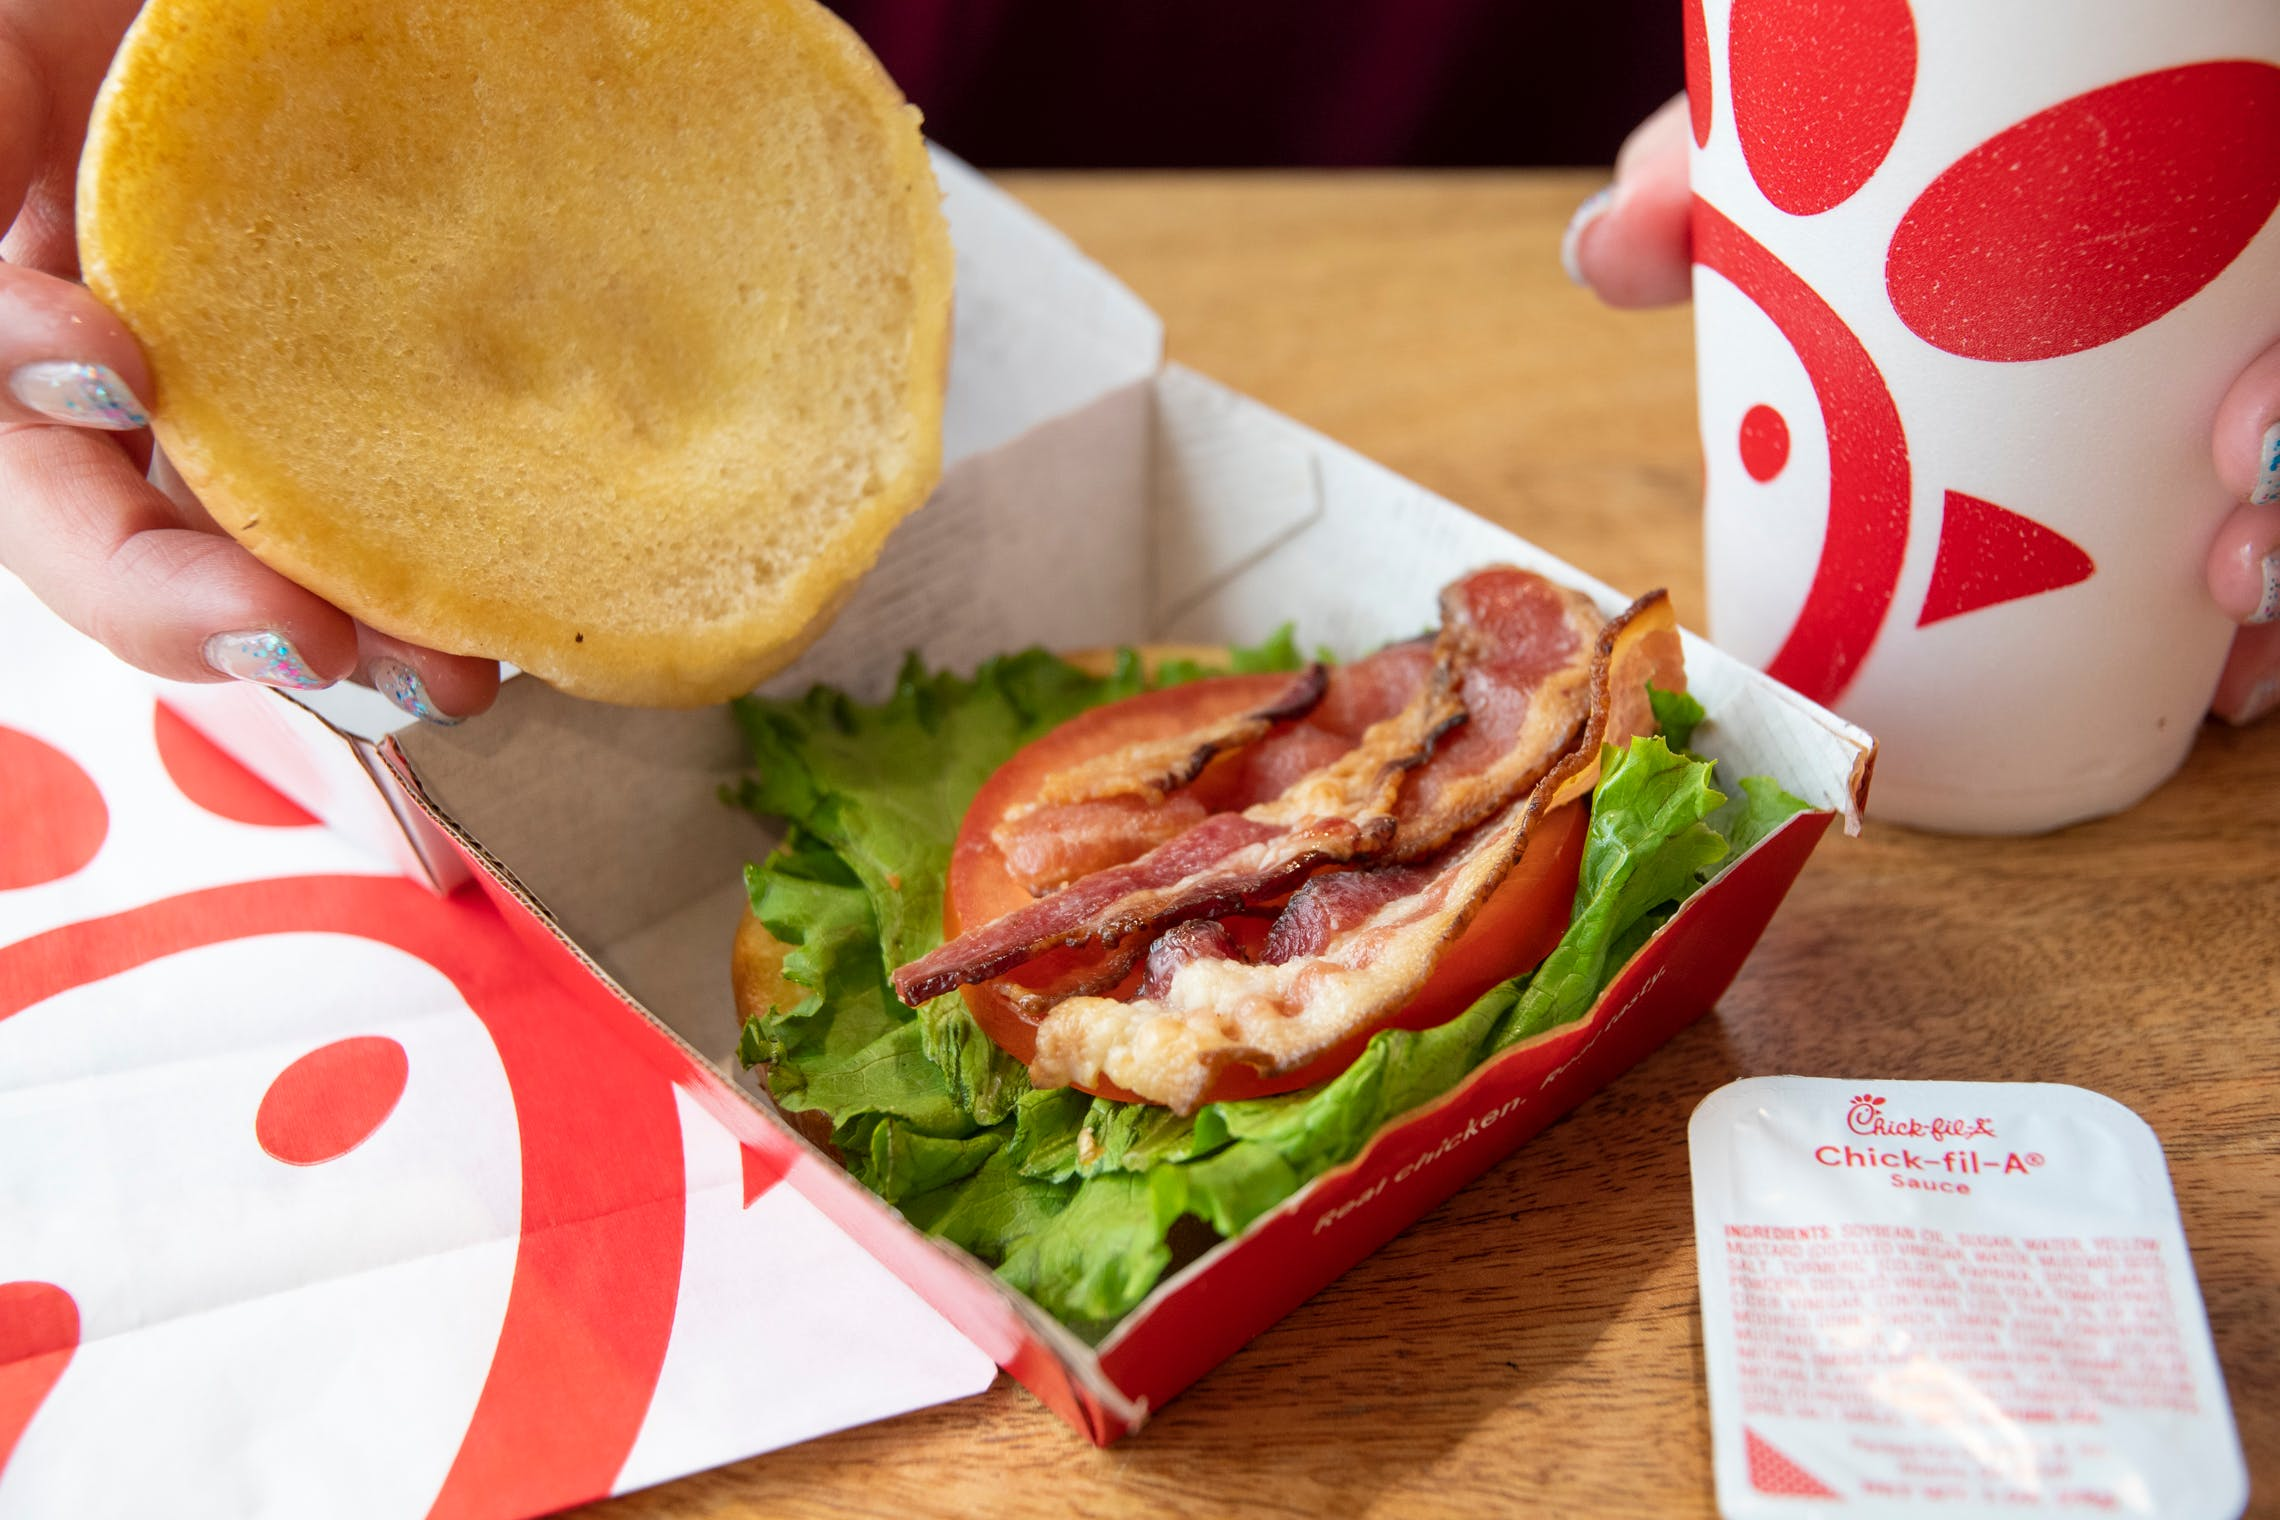 23 Chick Fil A Free Coupons And Secret Menu Hacks For Mor Chickin The Krazy Coupon Lady